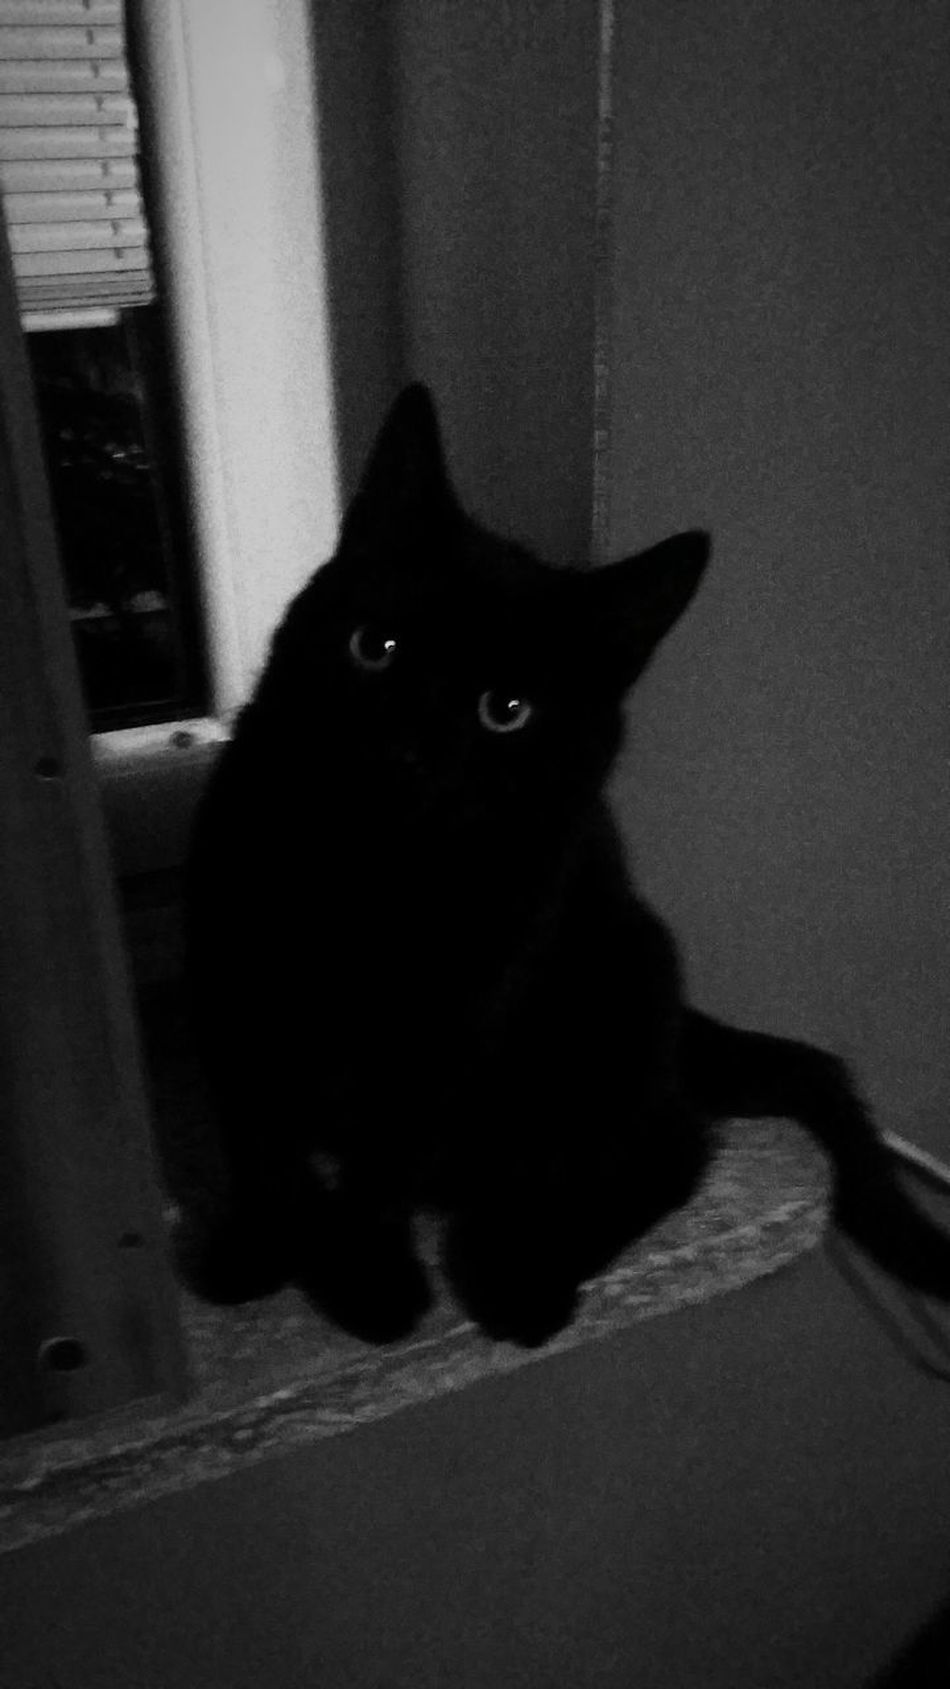 Pets One Animal Looking At Camera Cute Portrait Day BLackCat Cameleon Effect